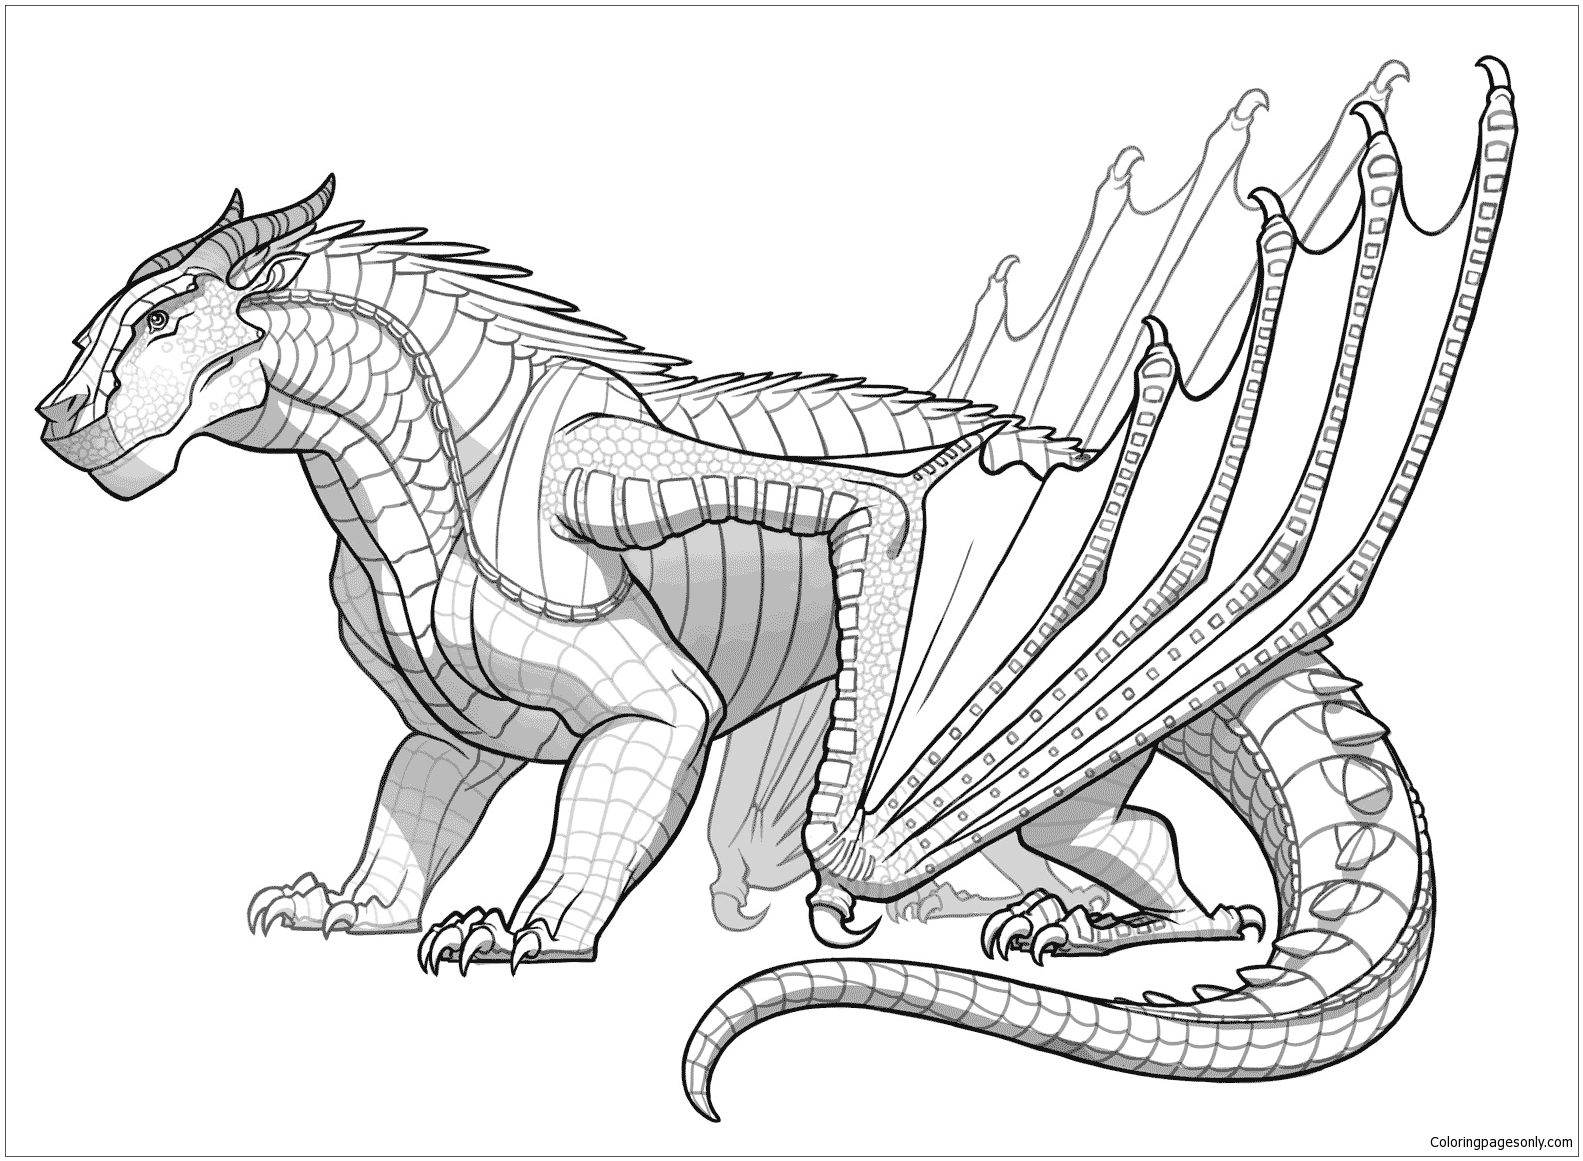 Awesome Mudwing Dragon Coloring Pages - Dragon Coloring Pages - Free  Printable Coloring Pages Online